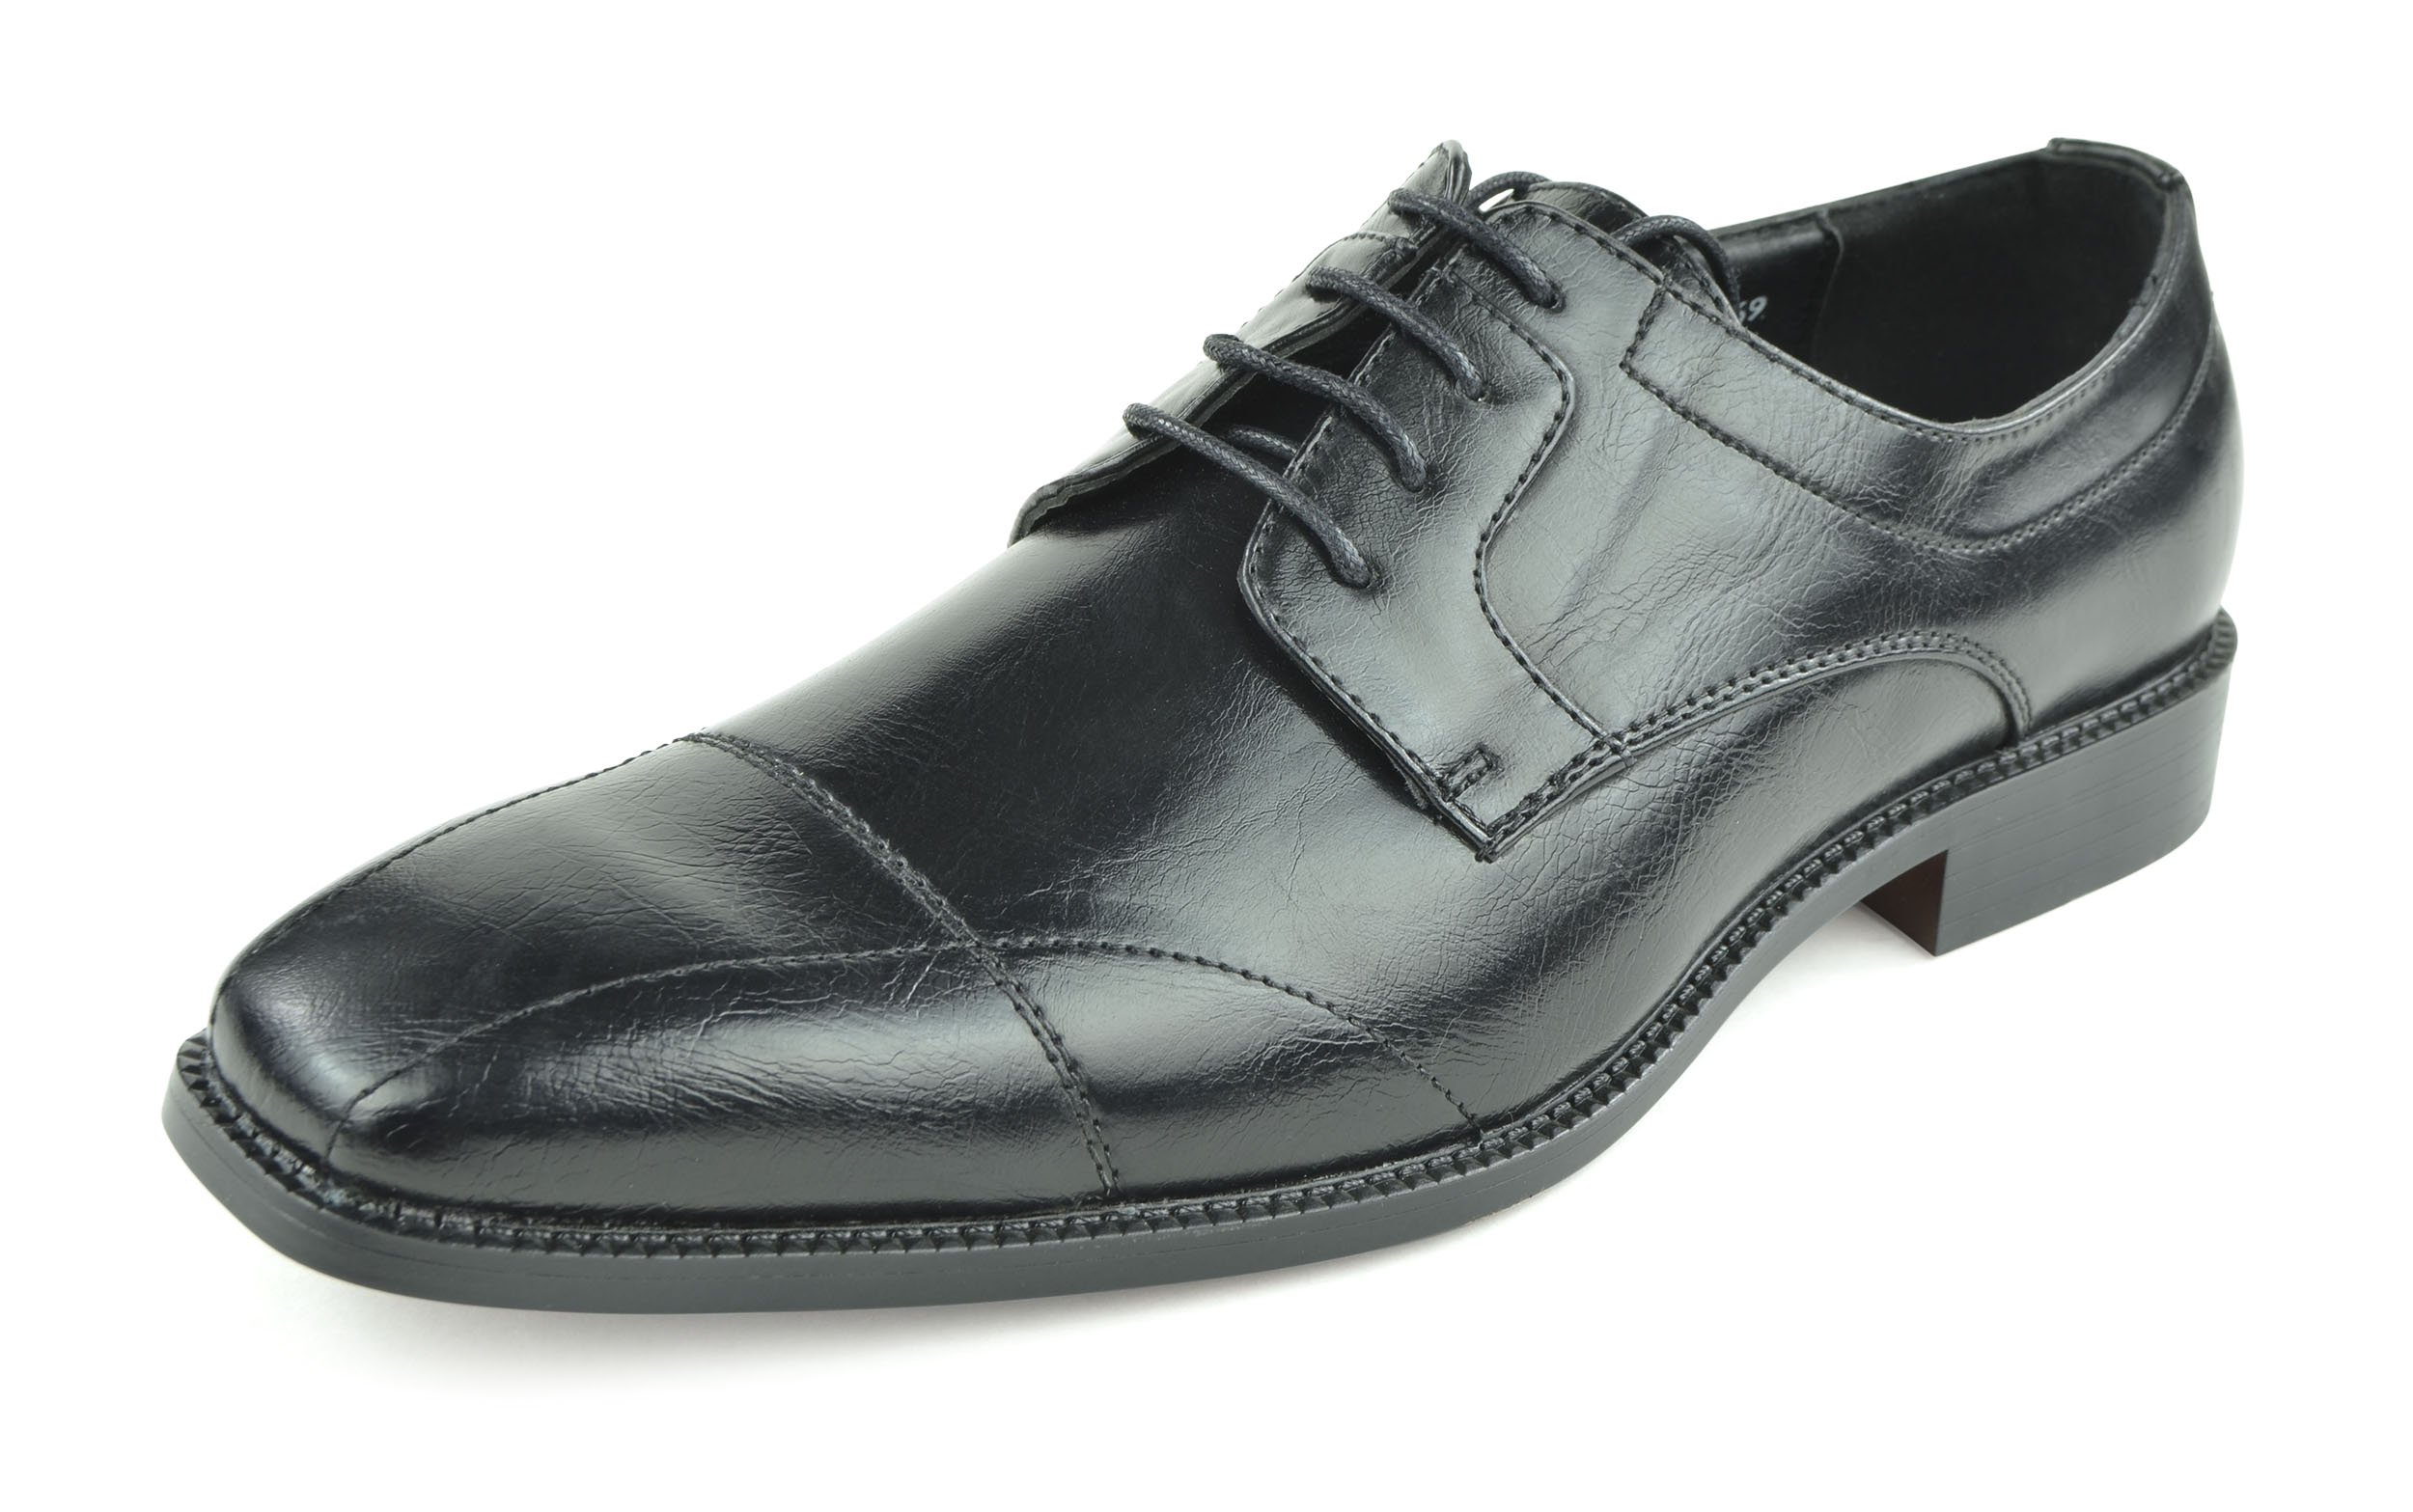 Moda Di Raza - Men's Oxford Lace Dress Shoes Sleek Trendy Light Shine - Black/10